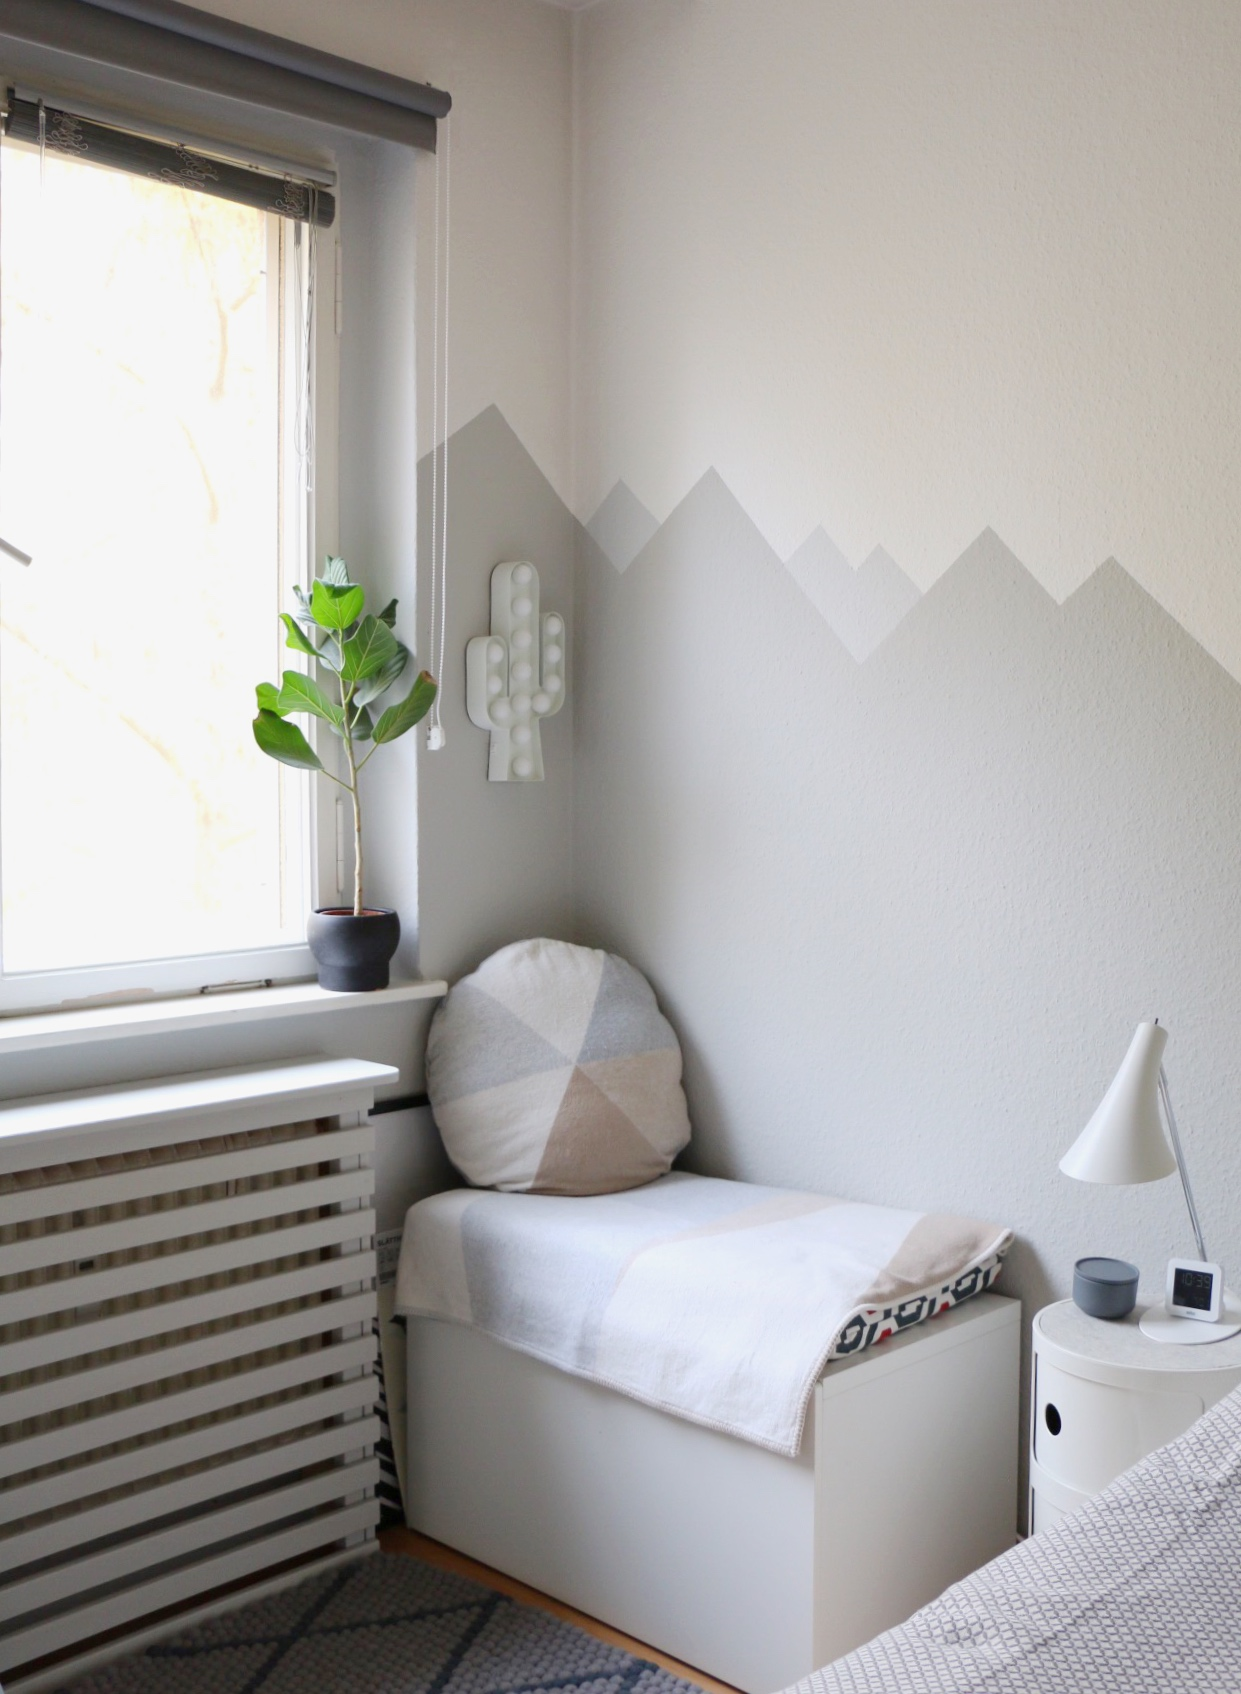 Mountain Nursery Wallpaint U2013 Wandgestaltung Im Babyzimmer